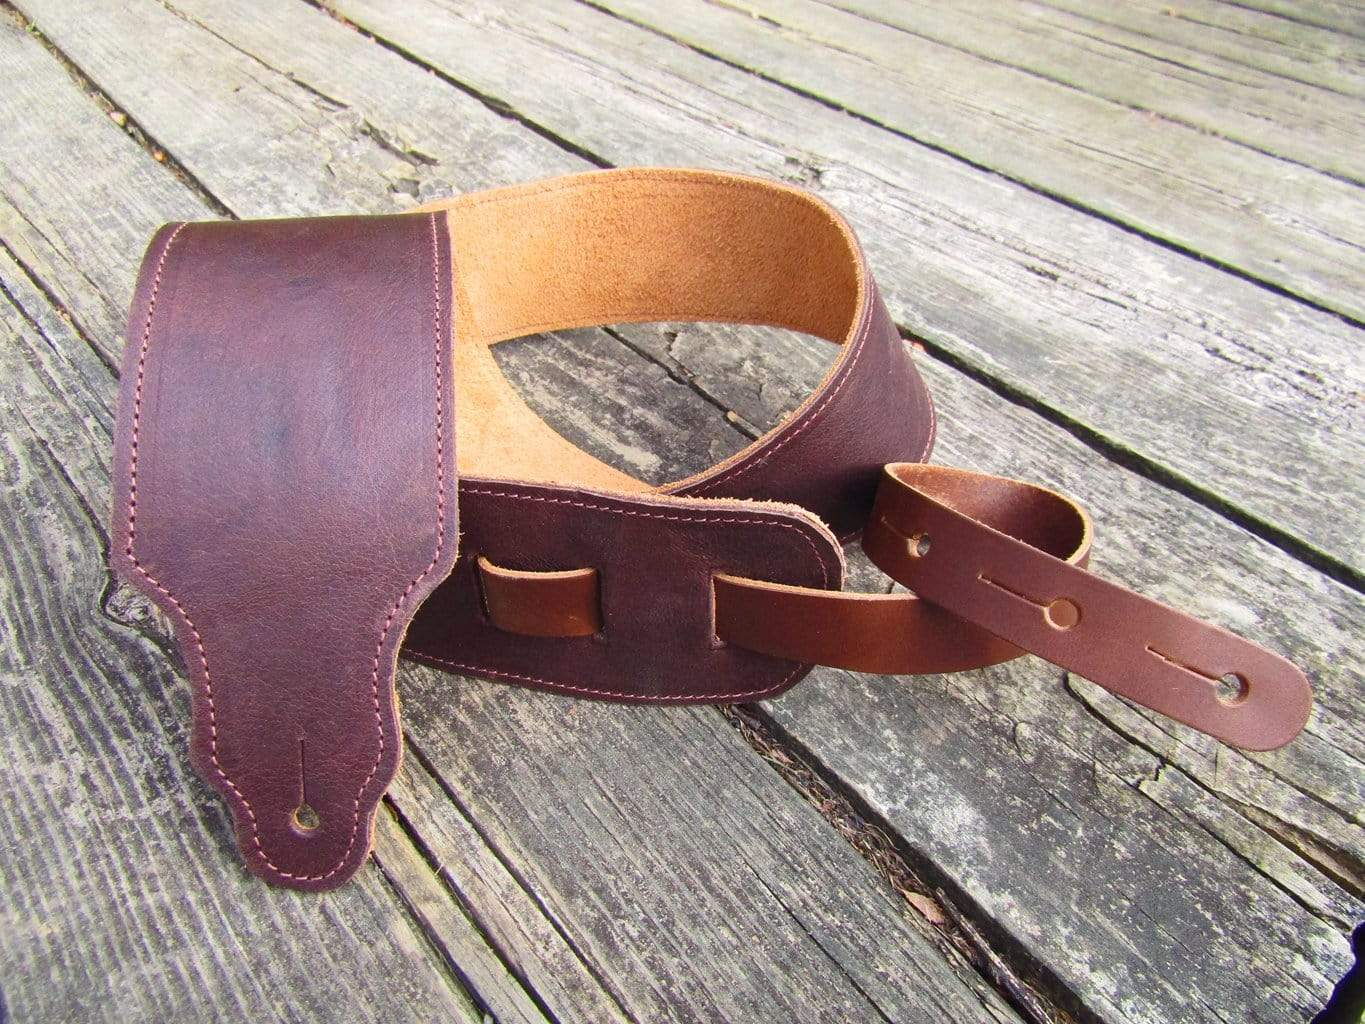 Soft leather guitar strap.